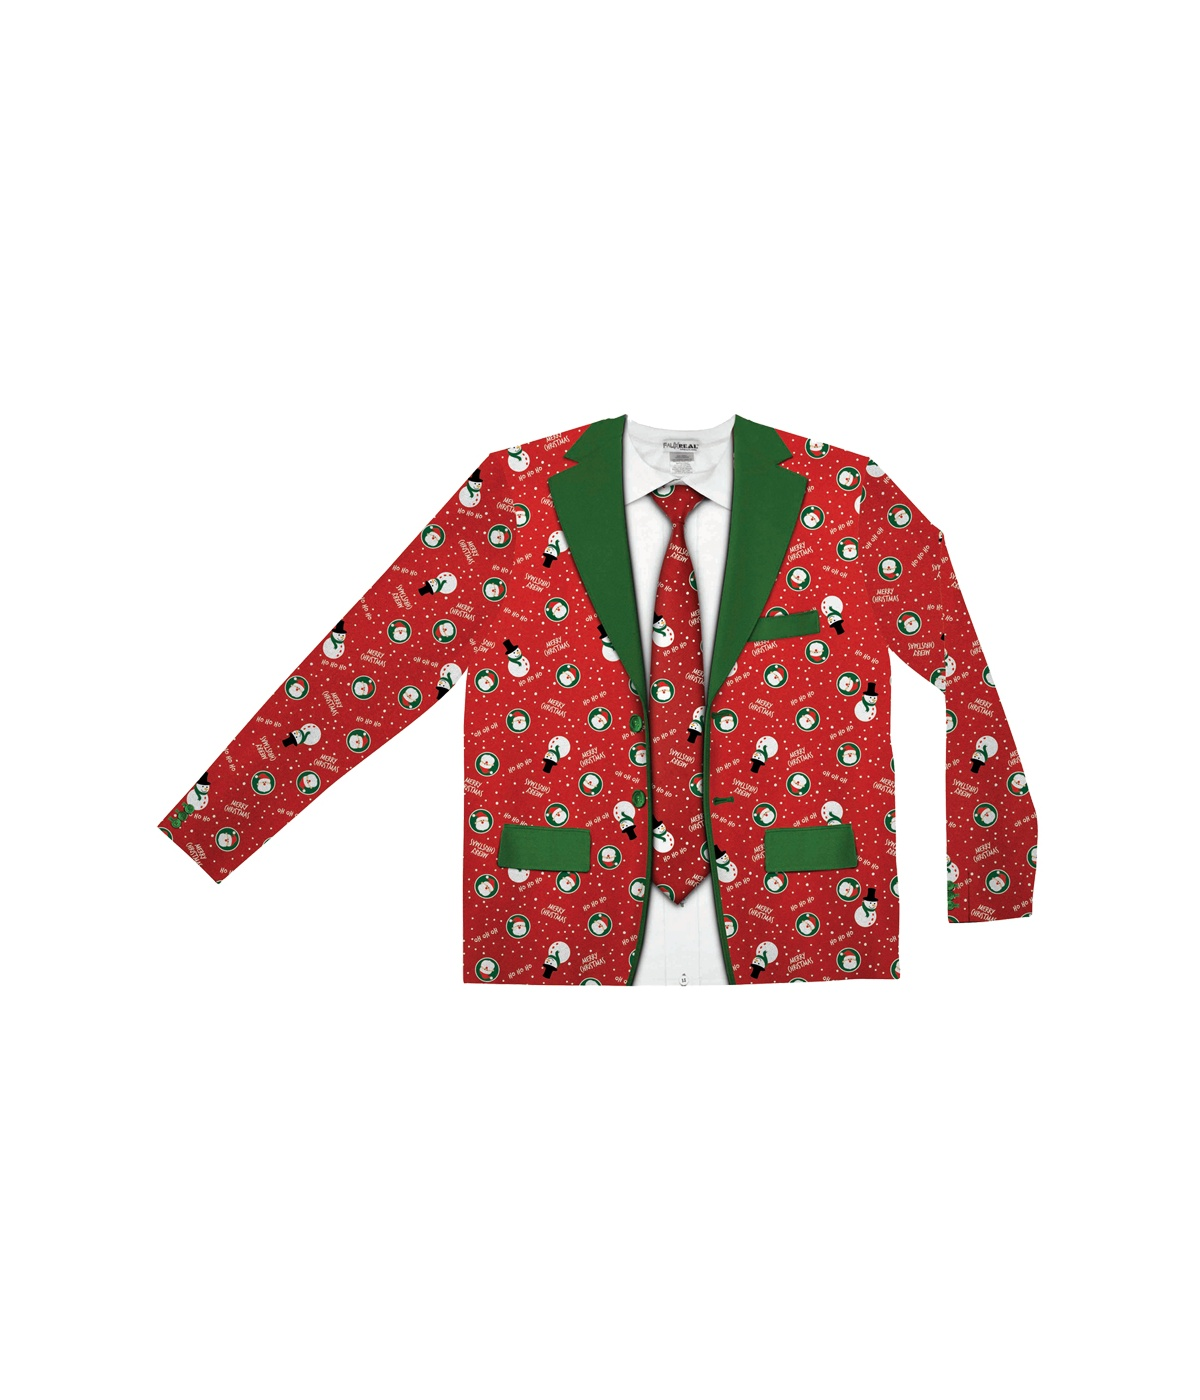 Christmas Suit.Ugly Christmas Suit Shirt And Tie Set Clown Costumes